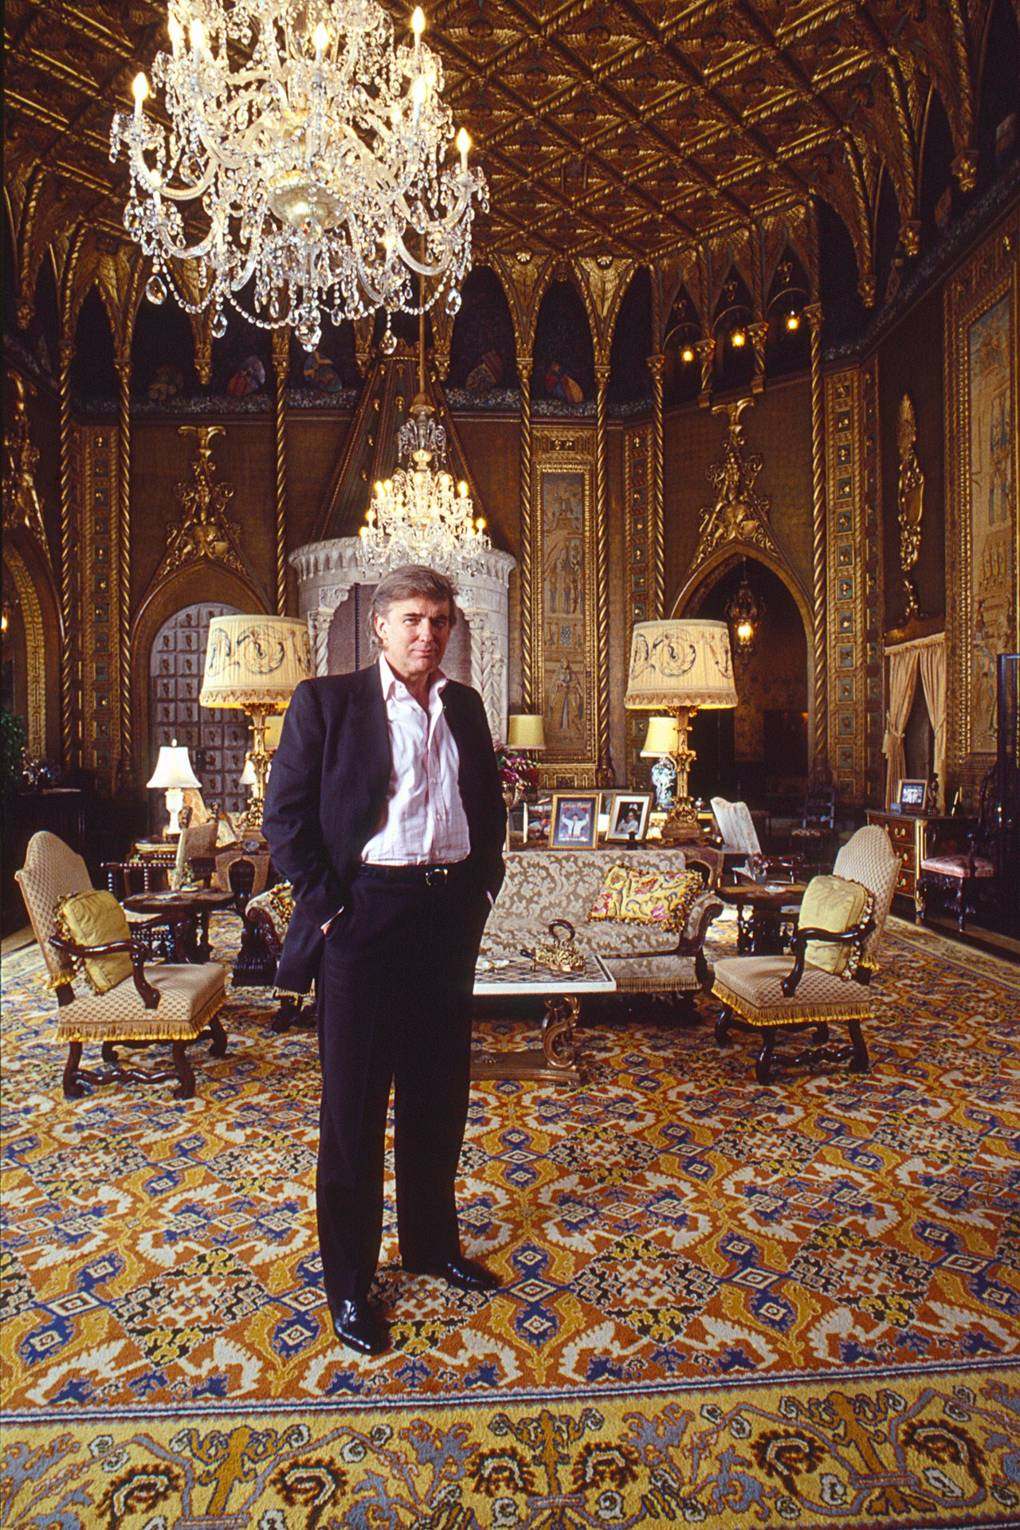 Trump in sitting room